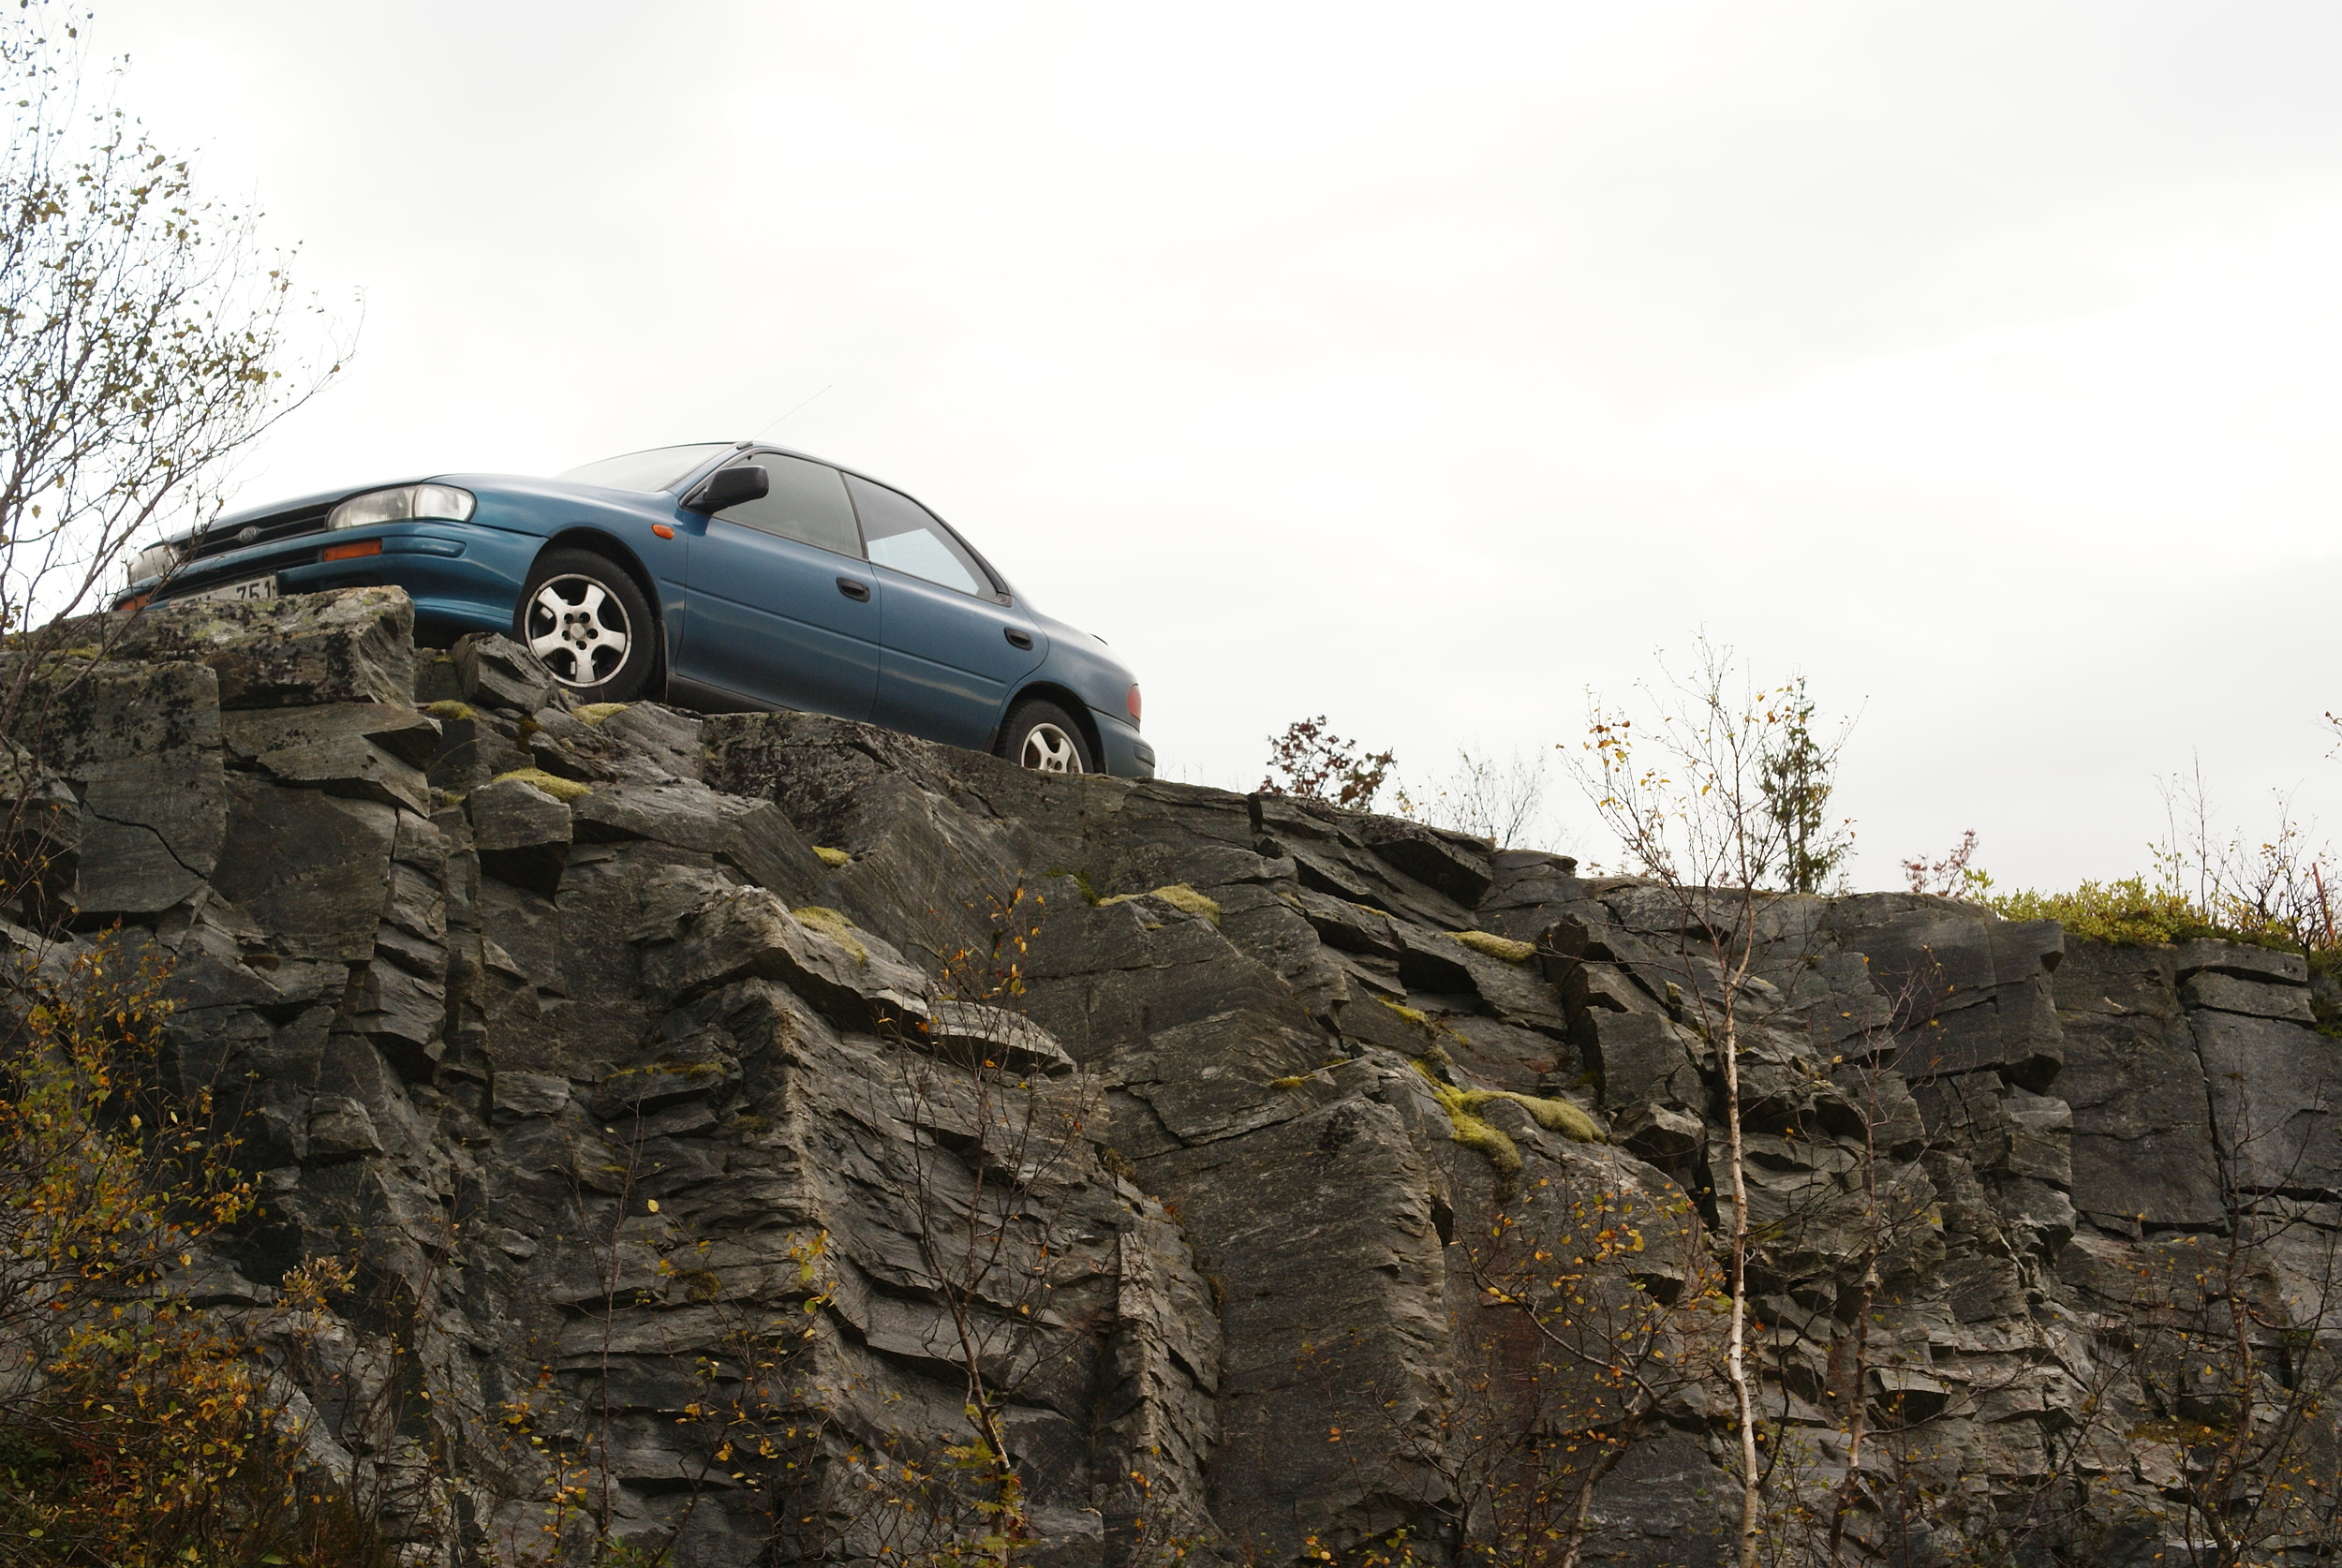 Our third and final car, a 2001 Subaru Impreza in northern Norway.